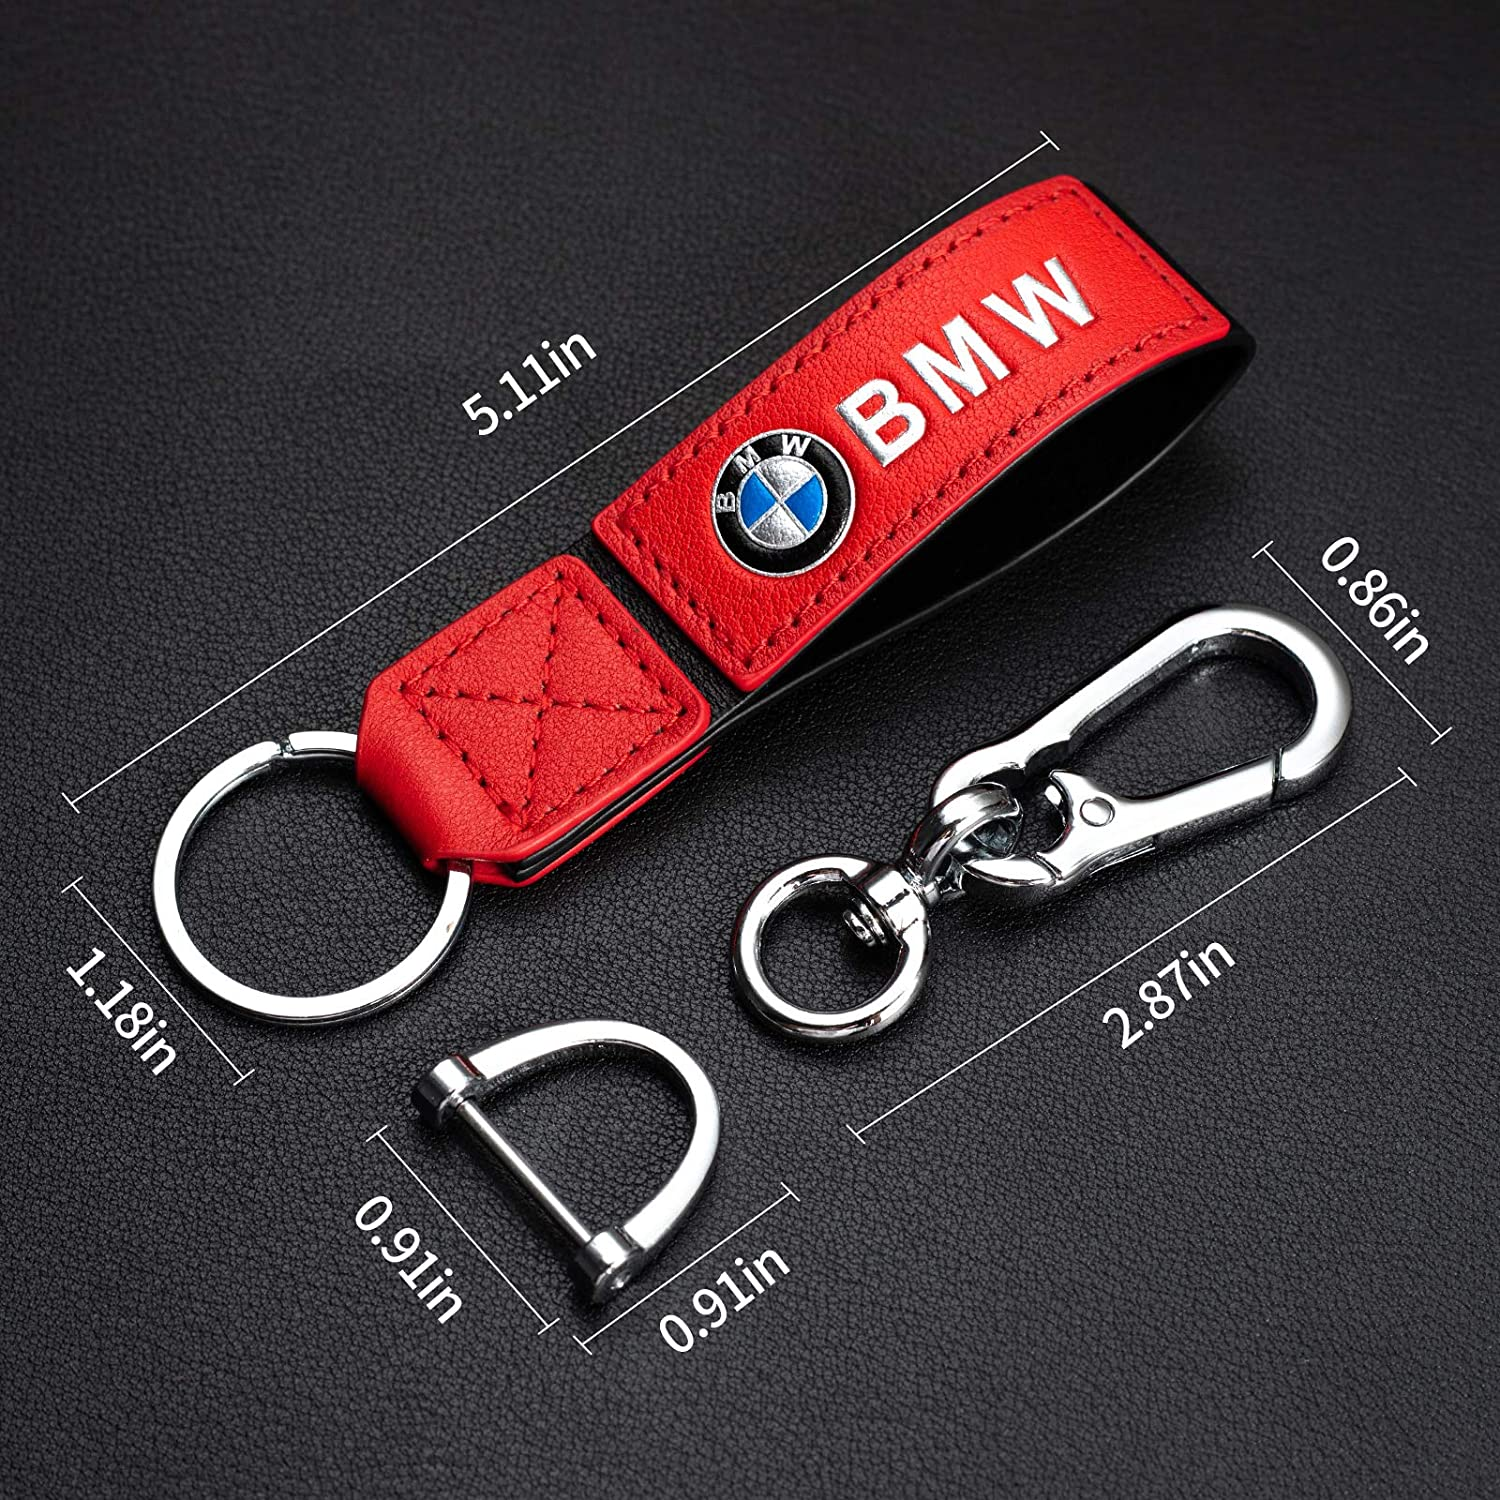 Genuine Leather Car Key Chain Keyring Keychain for Men and Women Accessories for Audi A1 A3 A4 Q5 Q7 R8 S5 S7 RS A5 A6 A7 A8